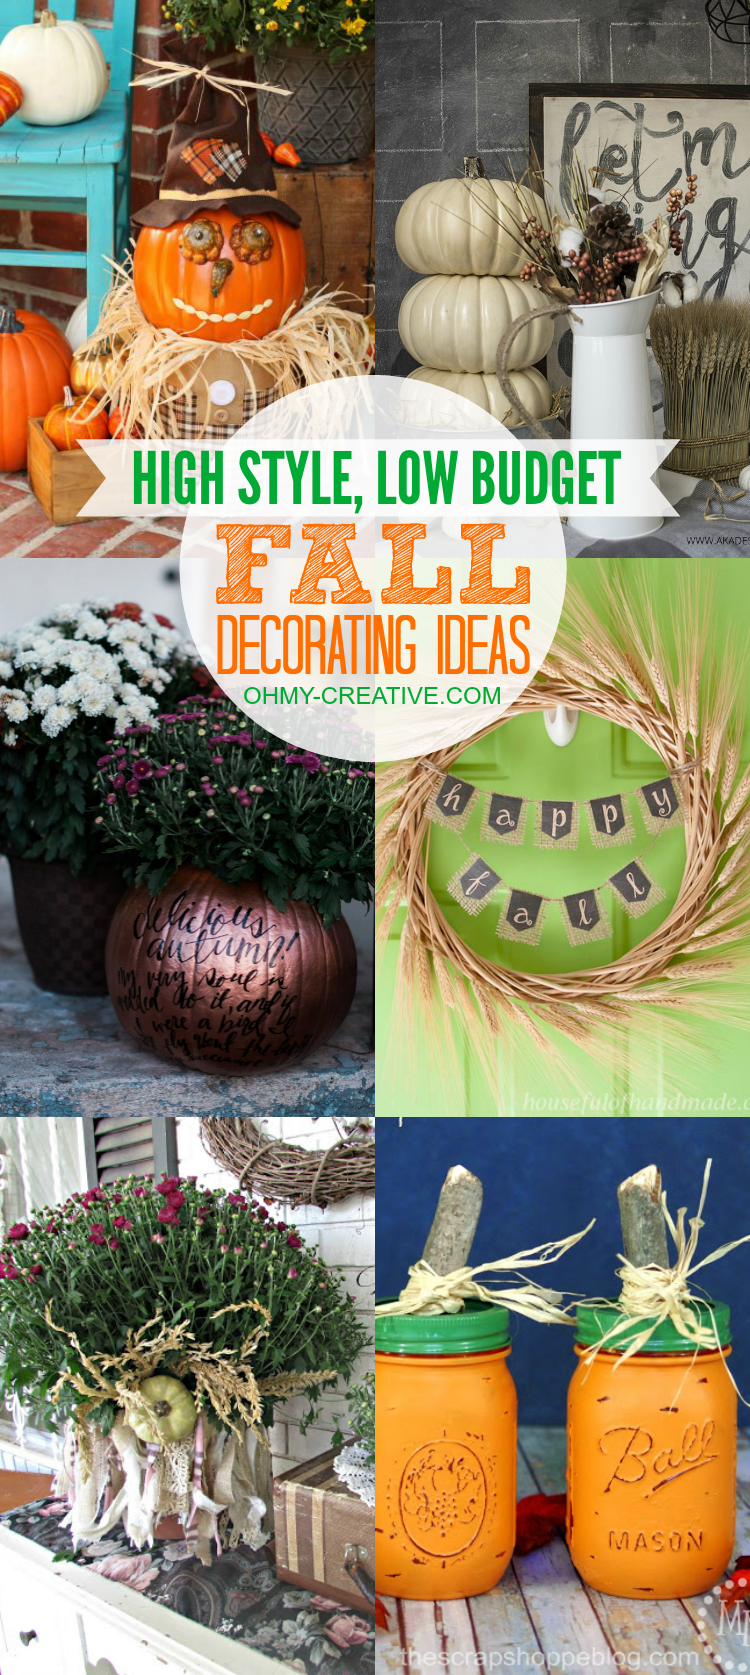 Fall decorating on a budget - High Style Low Budget Fall Decorating Ideas